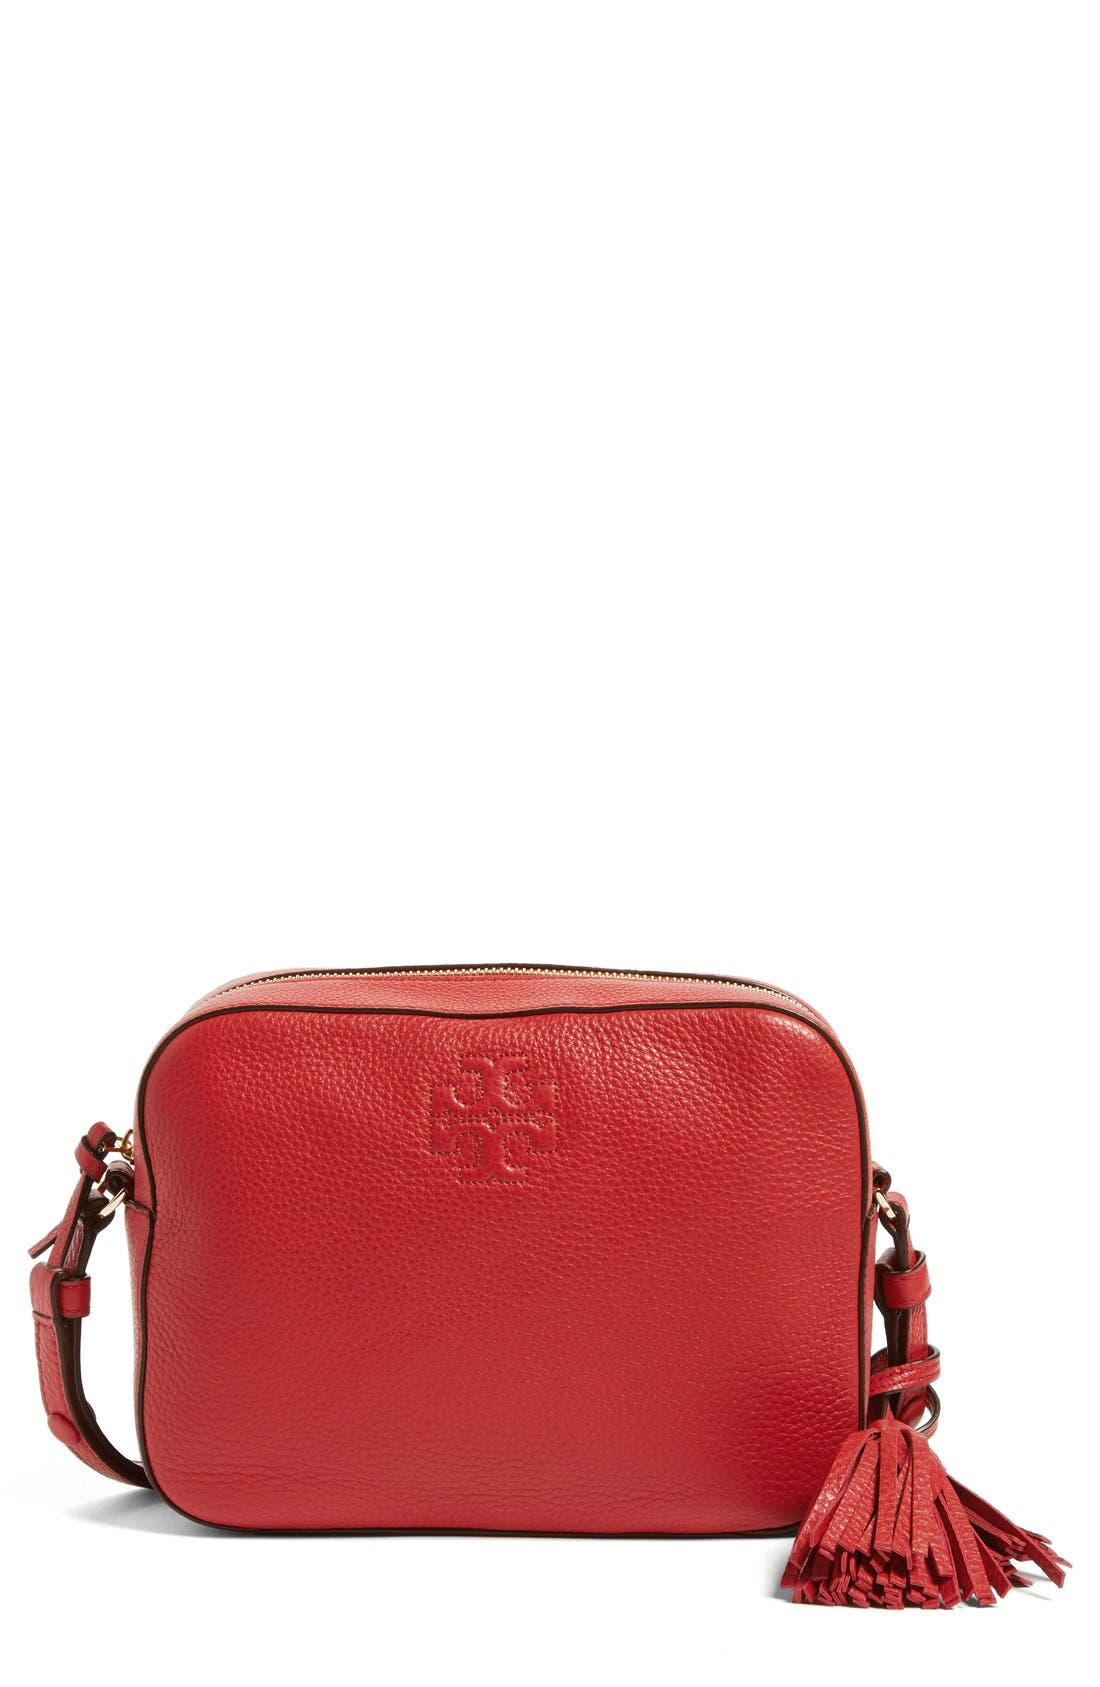 Alternate Image 1 Selected - Tory Burch 'Thea' Leather Shoulder Bag